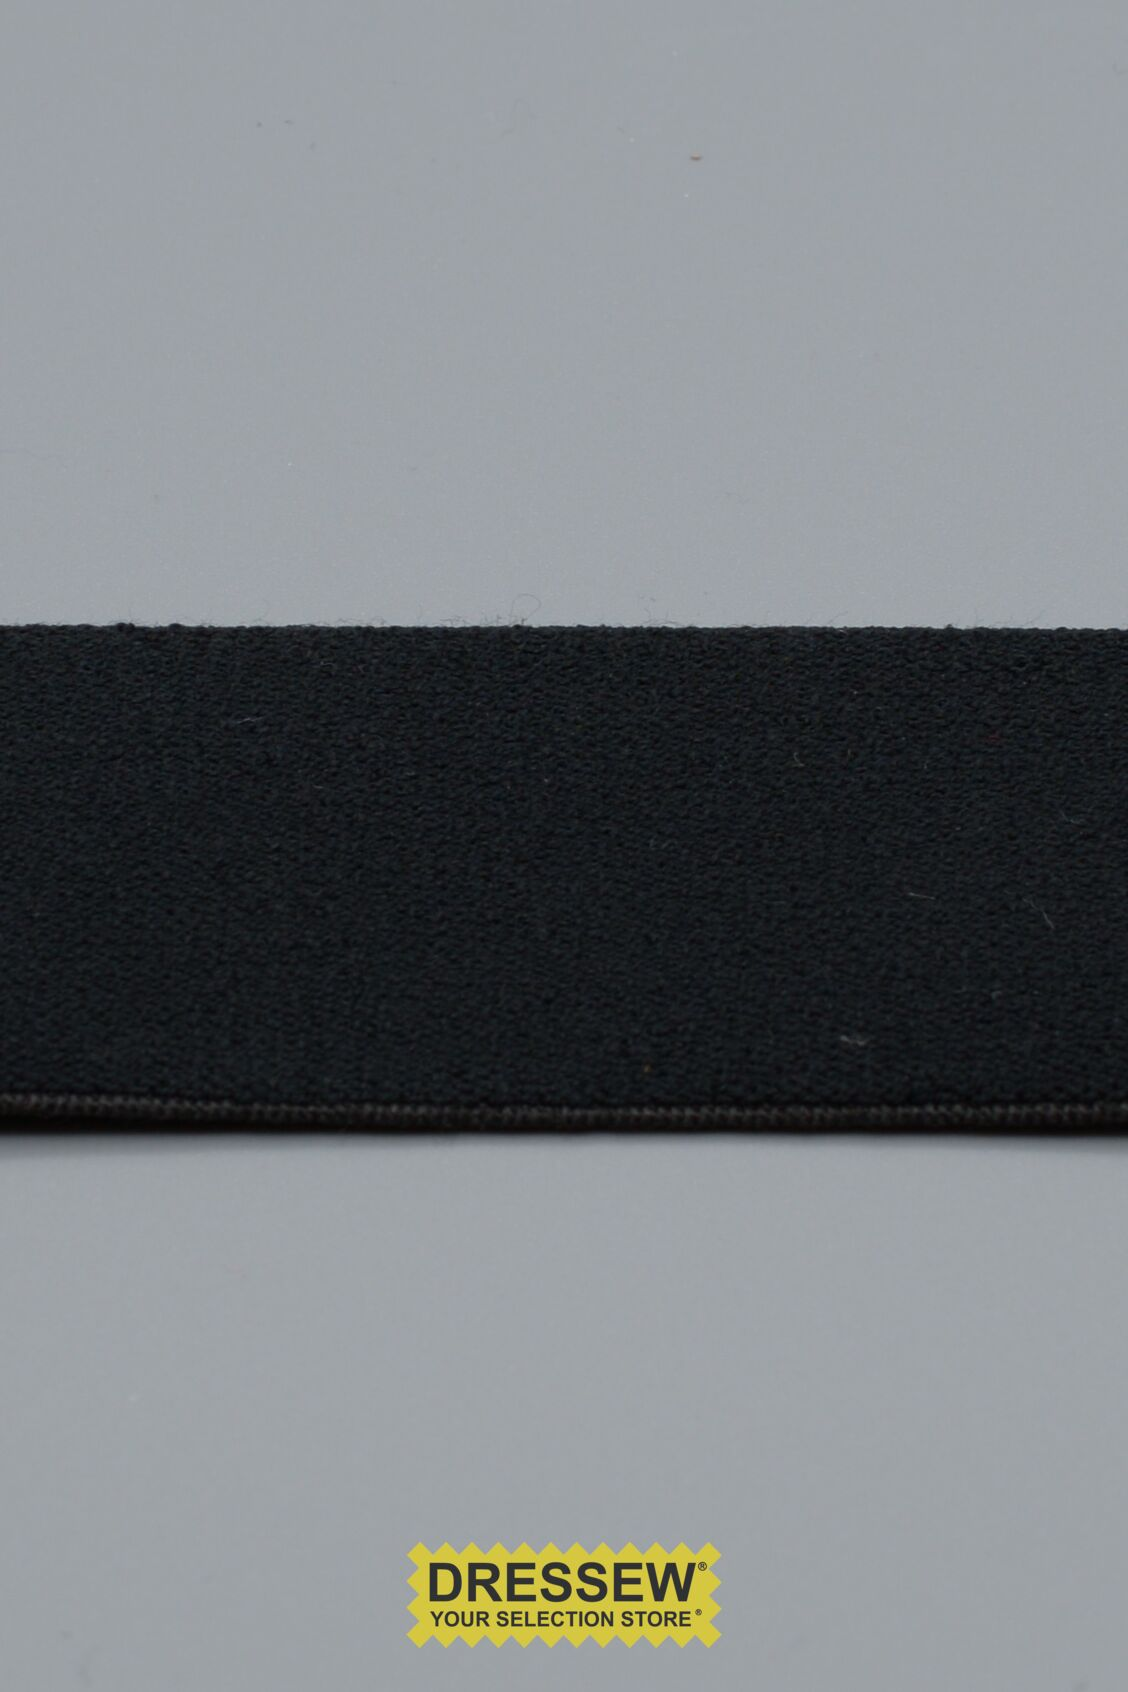 "Plush Elastic 38mm (1-1/2"") Black"